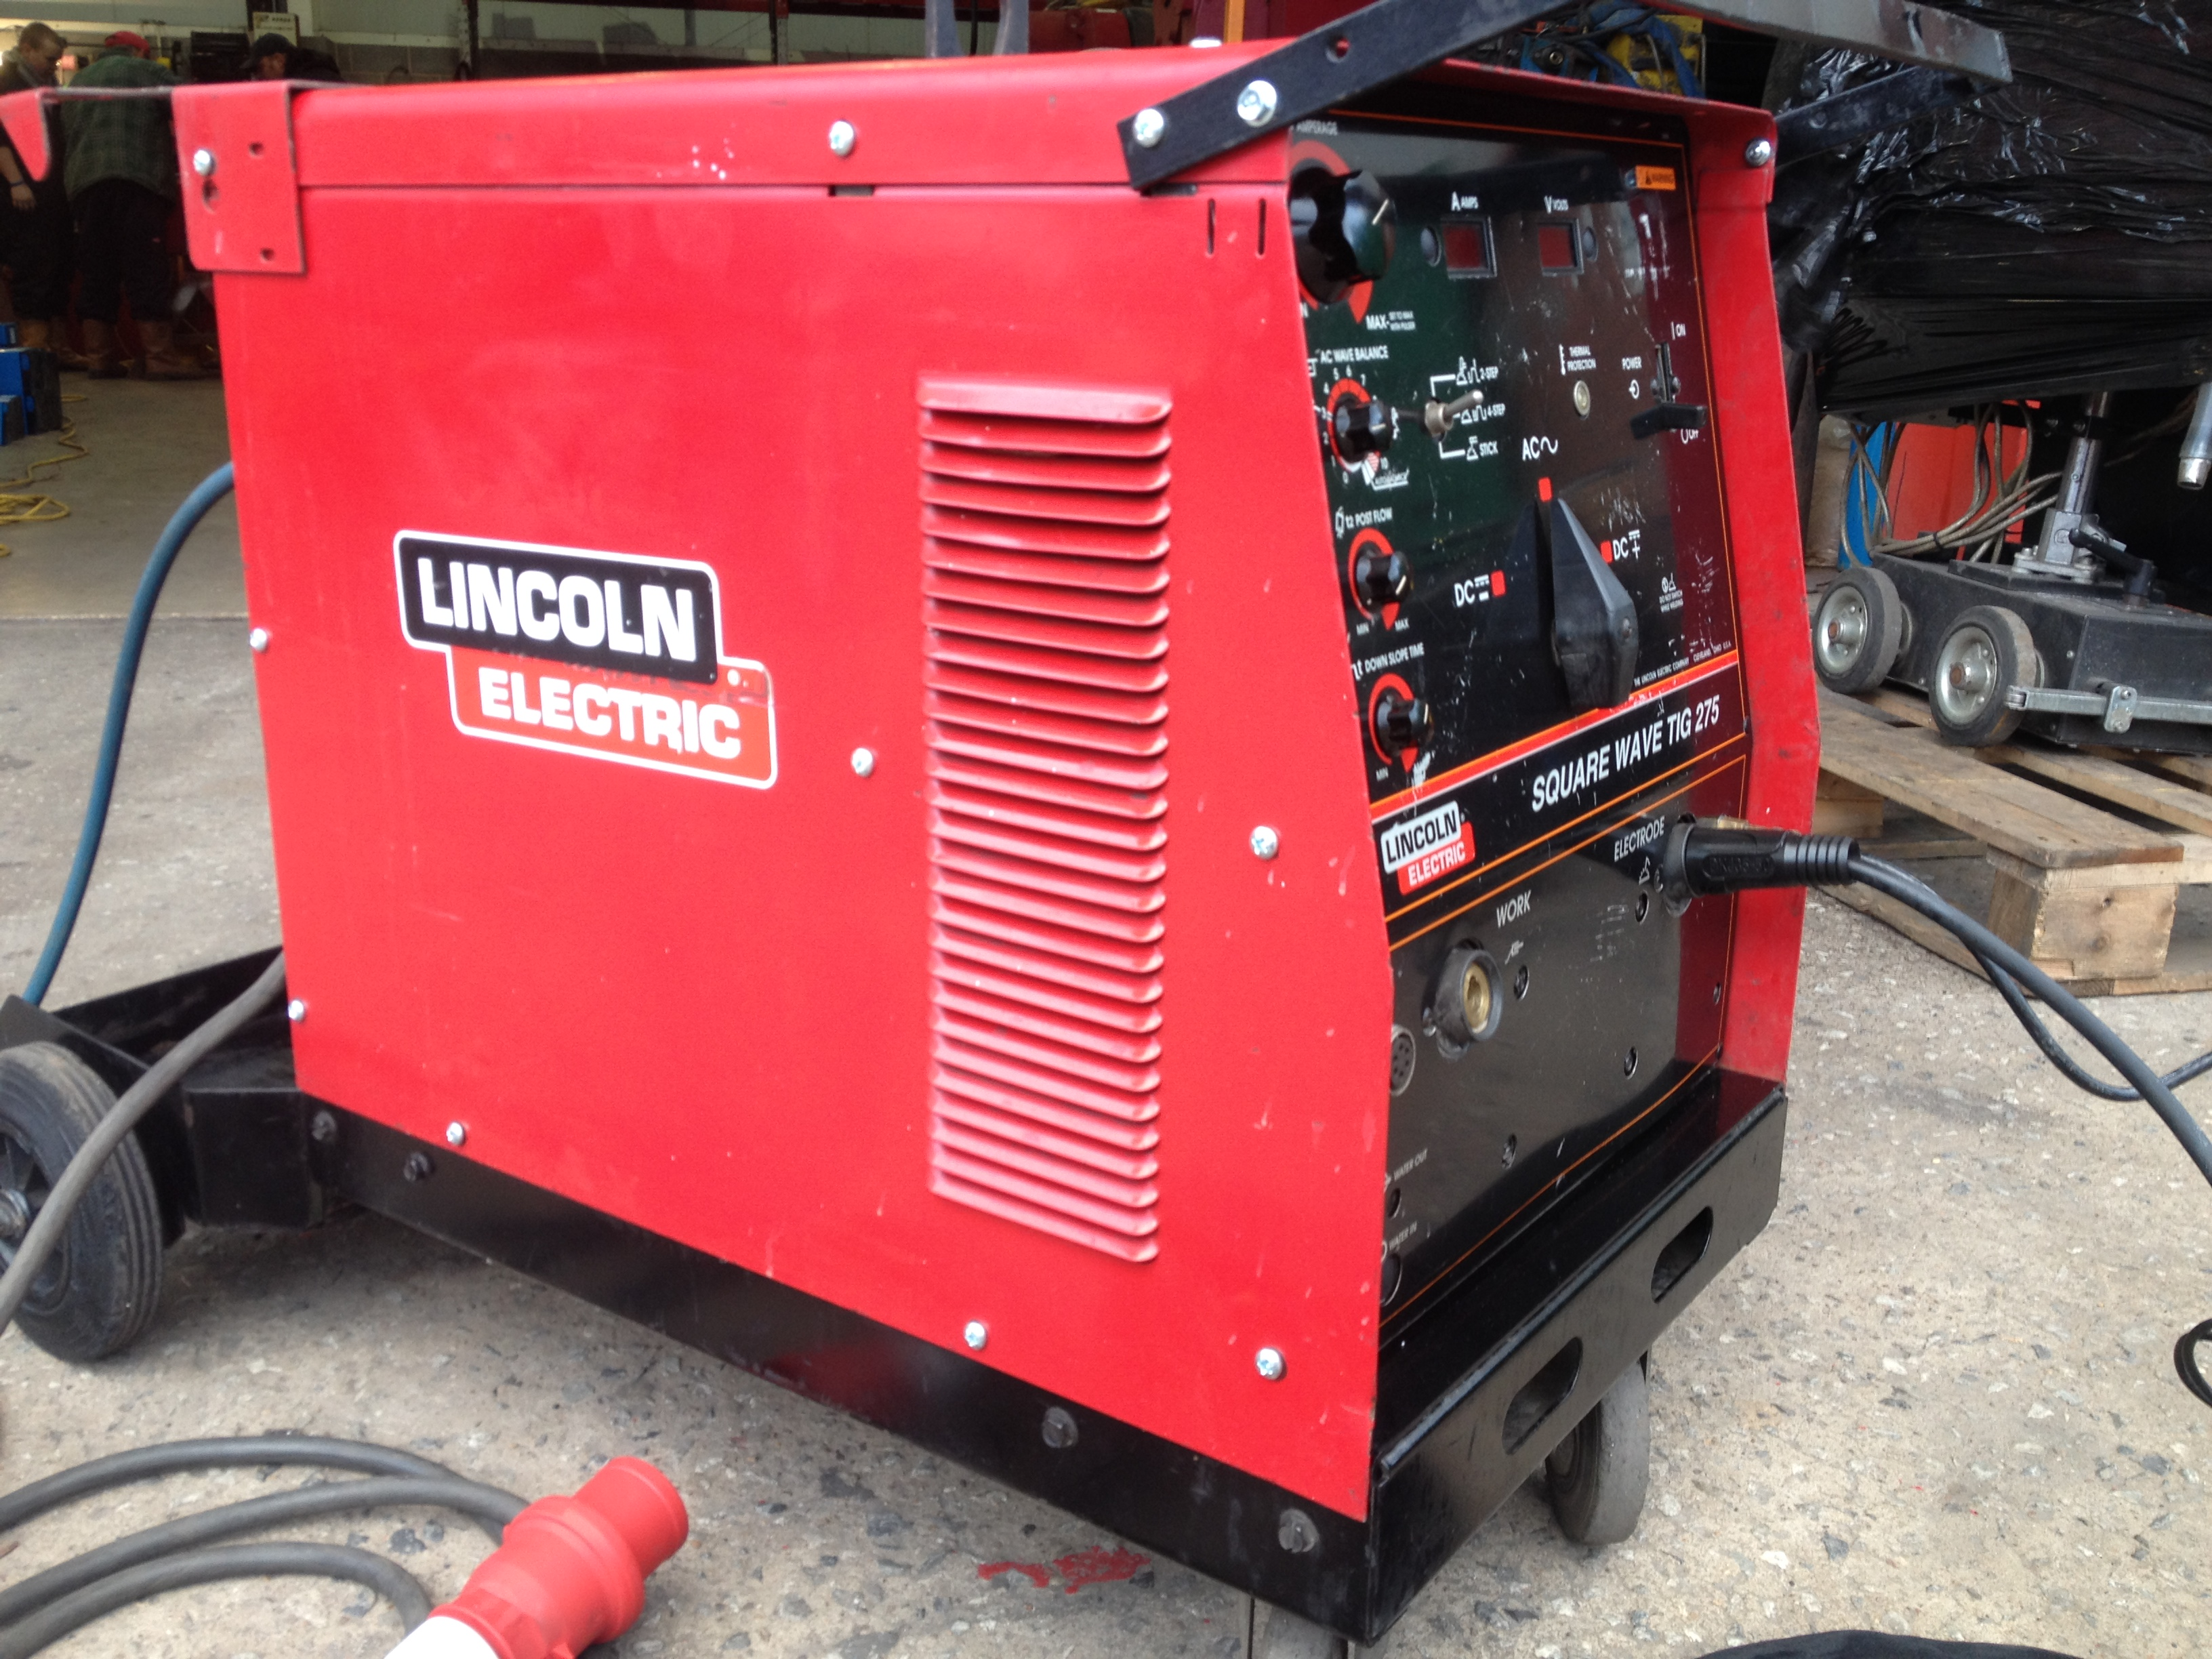 lincoln ranger 8 welder wiring diagram use the tree to predict probability 9